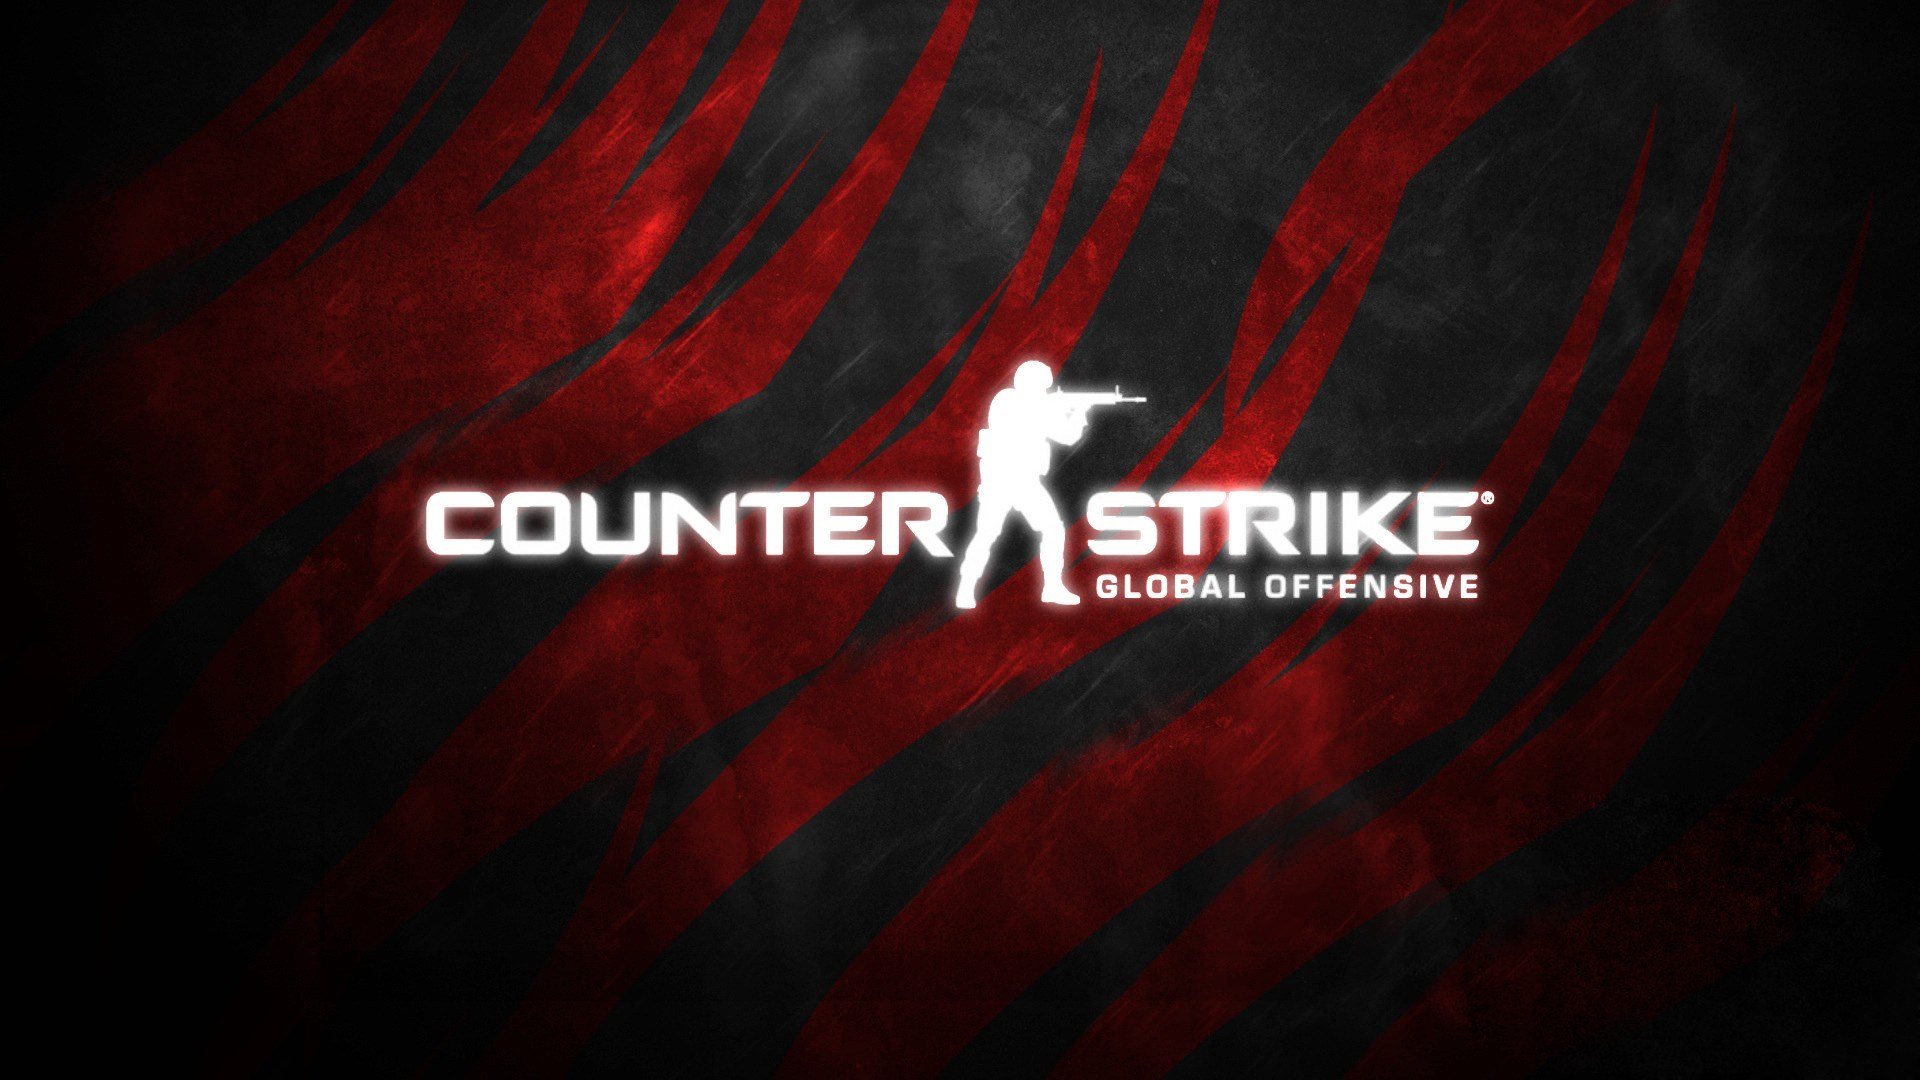 1920x1080-free-and-screensavers-for-counter-strike-global-offensive-wallpaper-wp380812